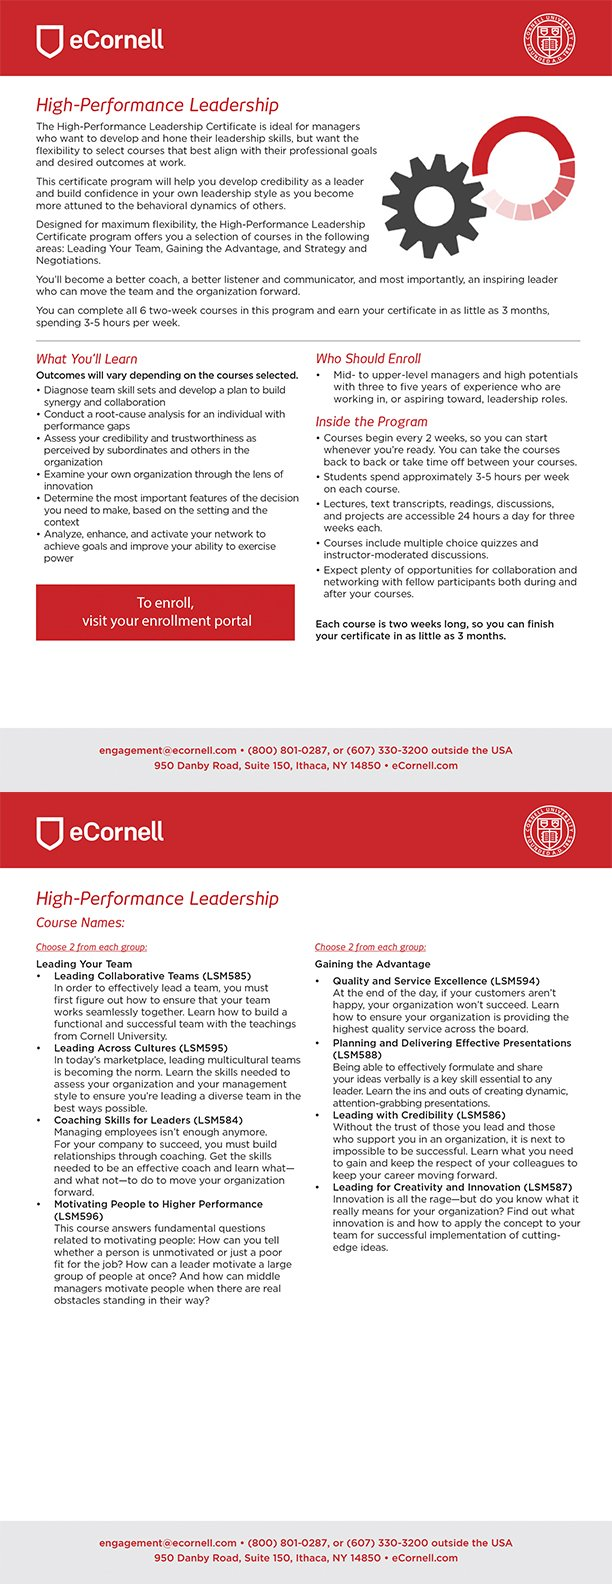 High-Performance Leadership Flyer for Corporations